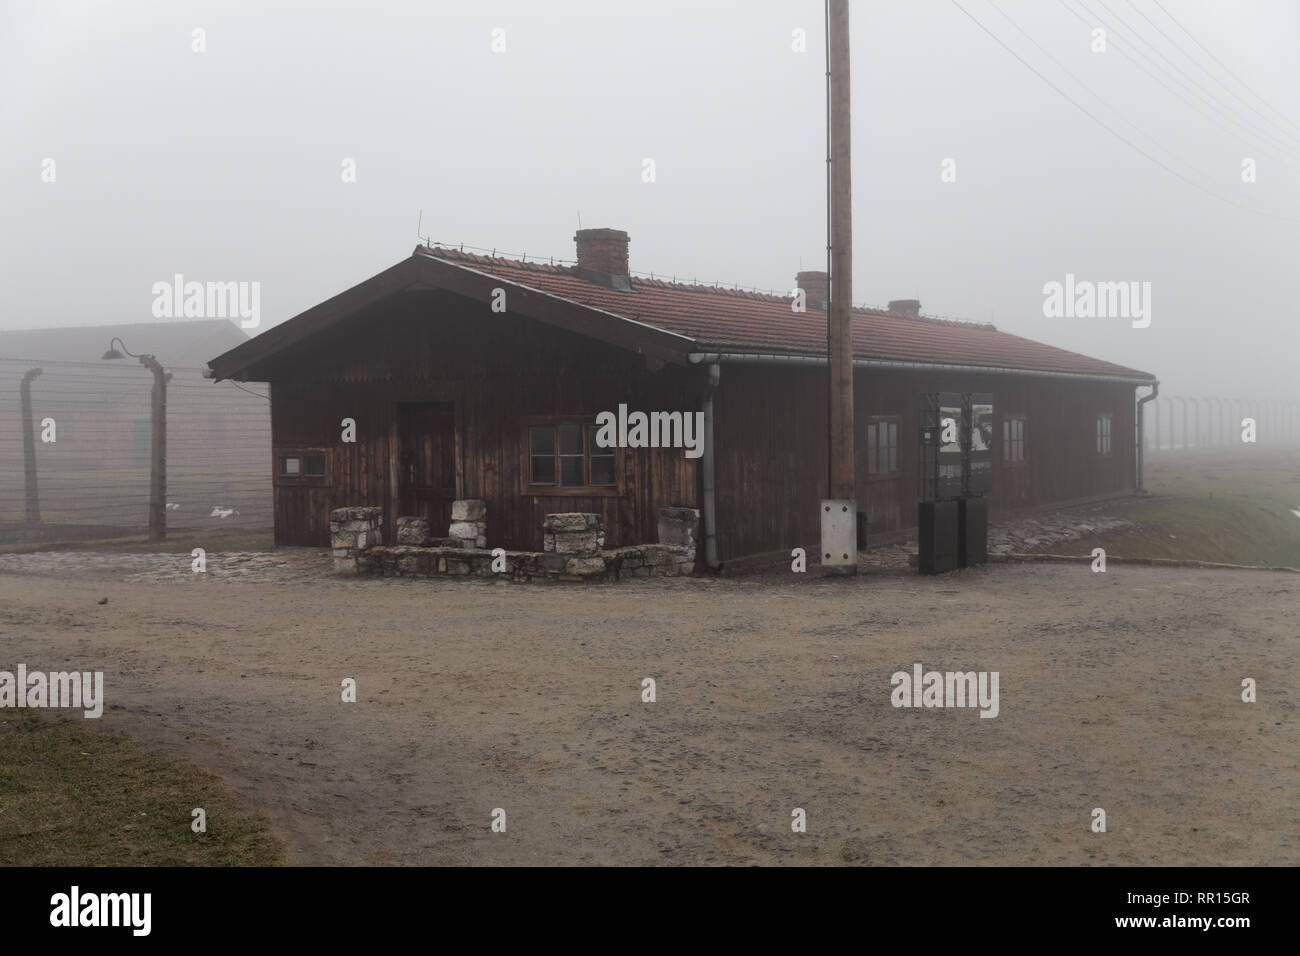 Auschwitz-Birkenau concentration camp. Station building accepting transport of convicts. German death camp. Barak branch Canada. - Stock Image